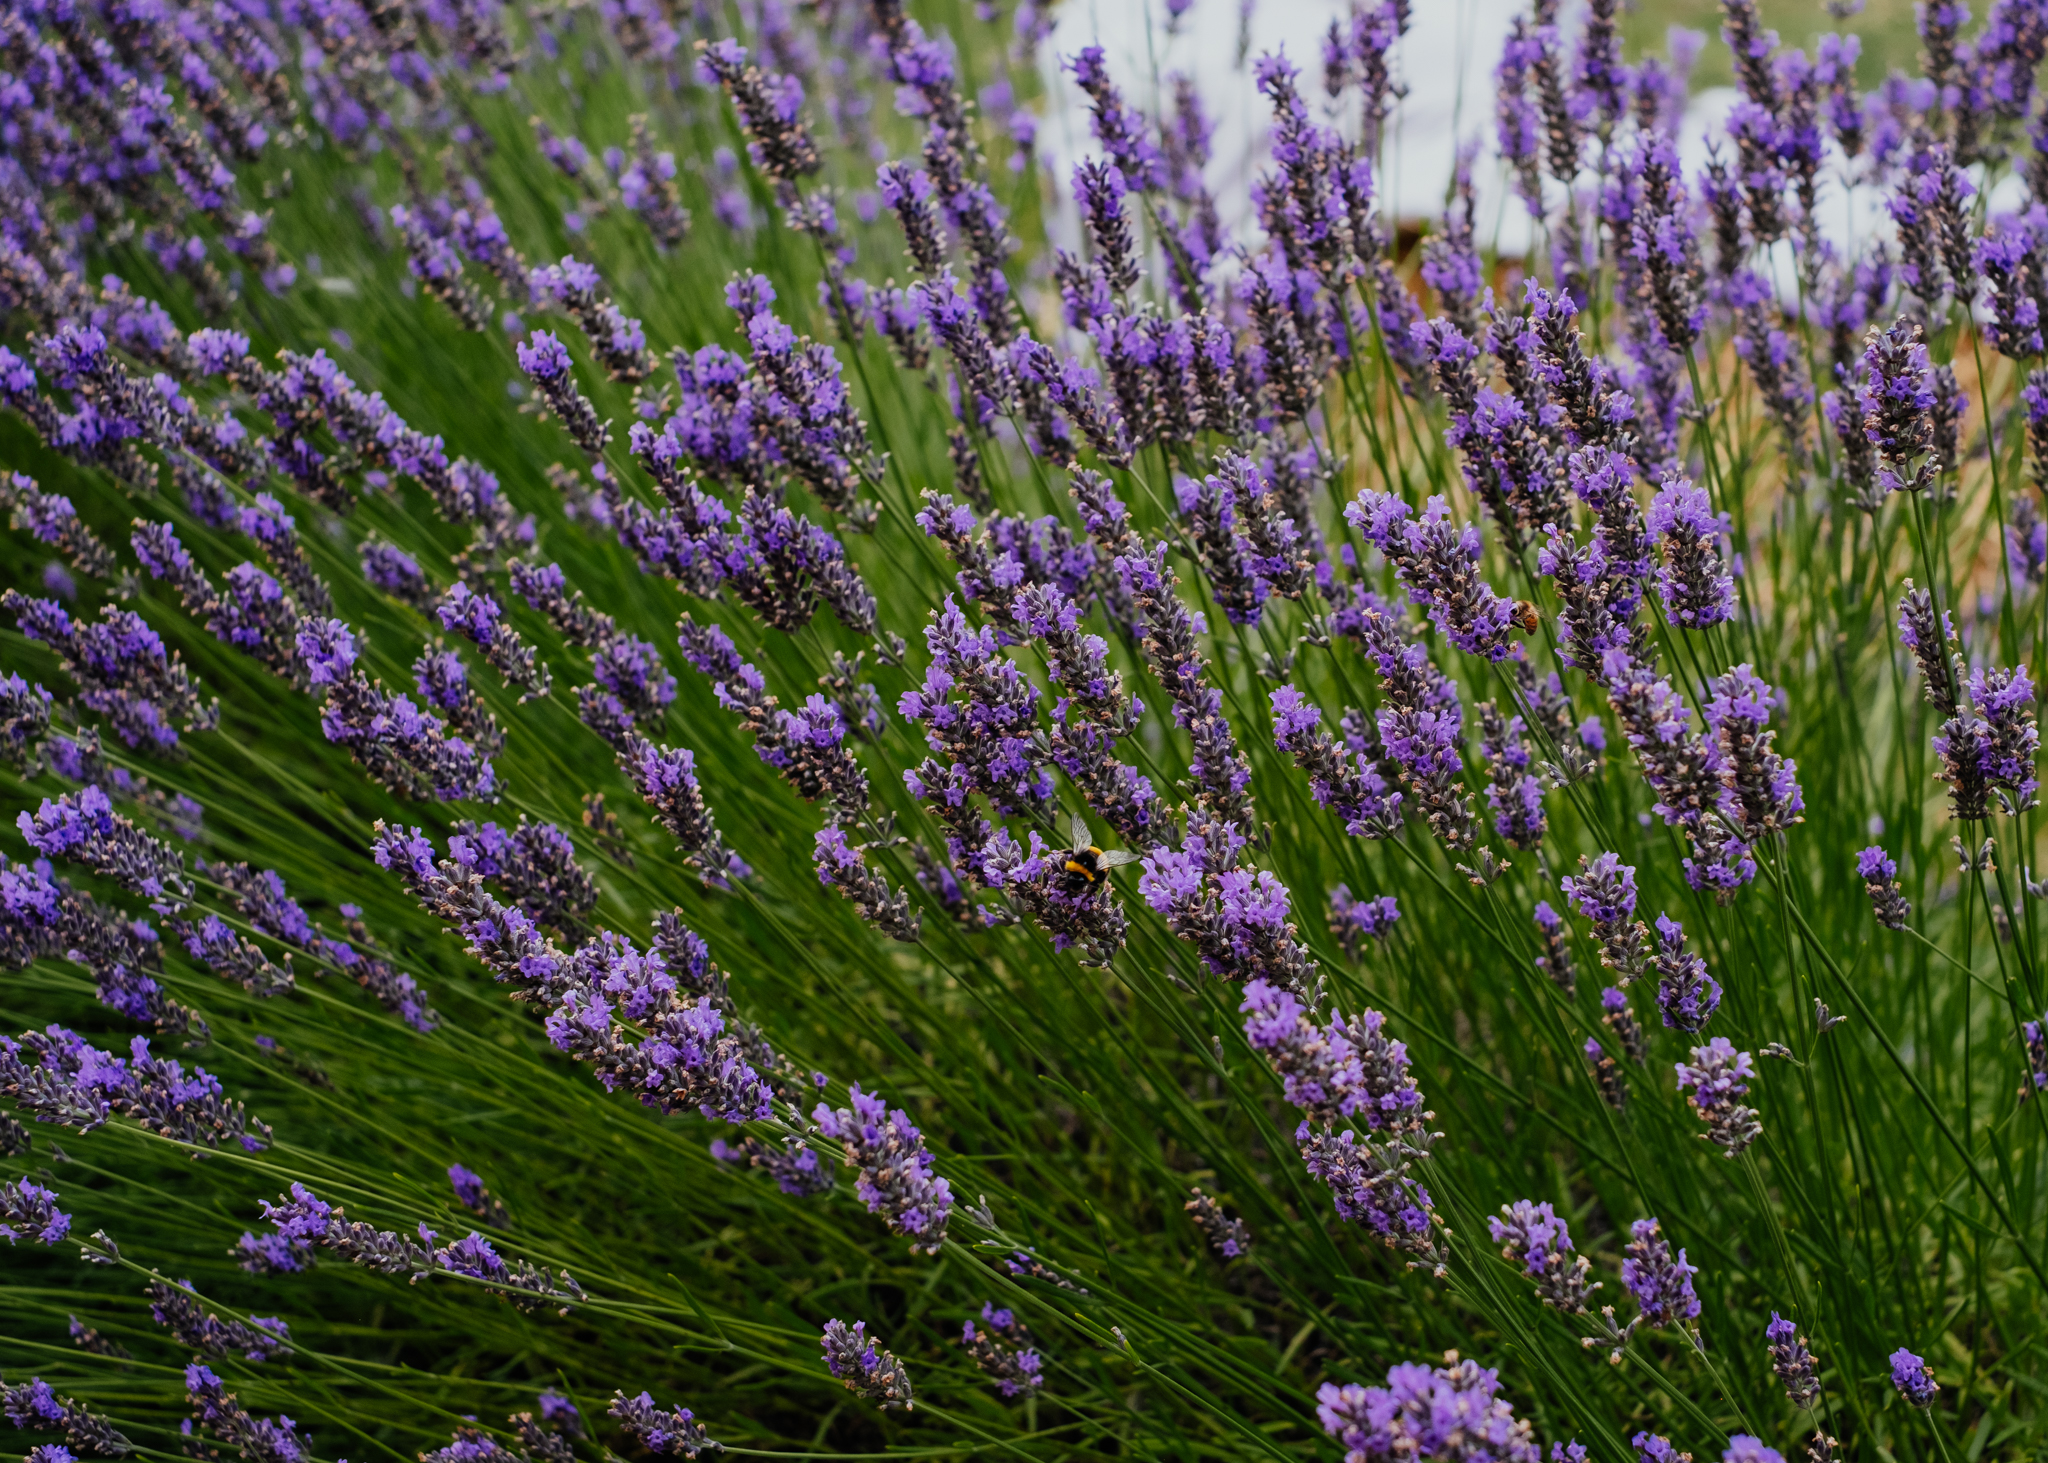 Bee on lavender plant at Rumbolds Farm wedding